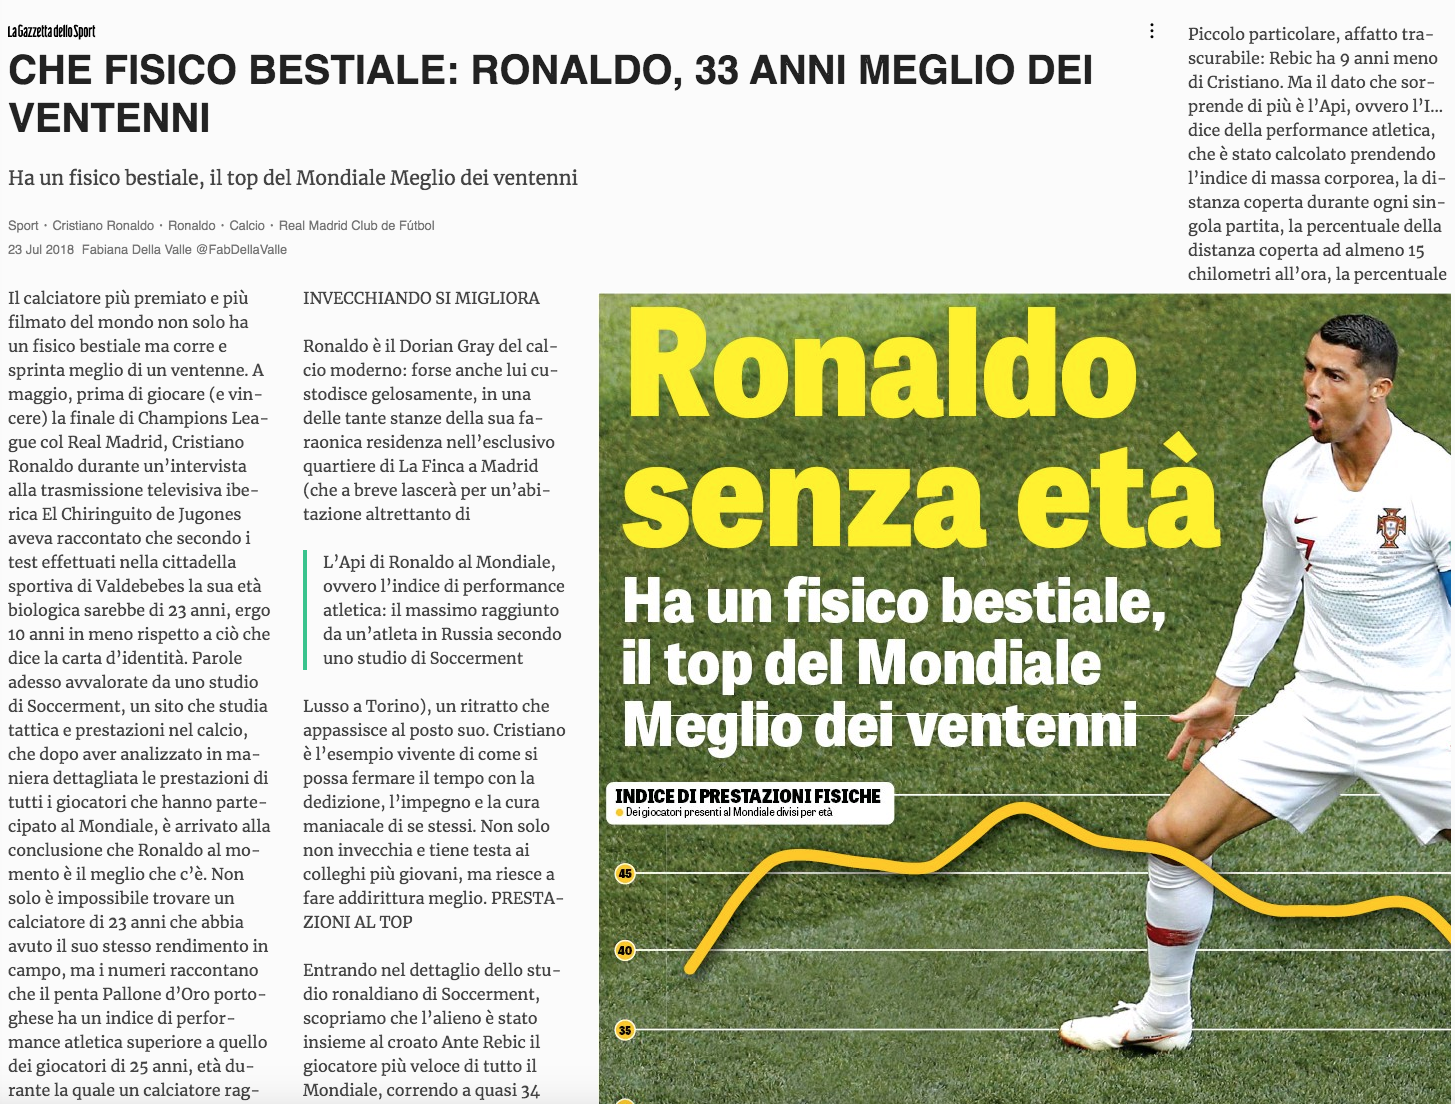 Athletic performance in World Cup 2018: Soccerment's research on La Gazzetta dello Sport